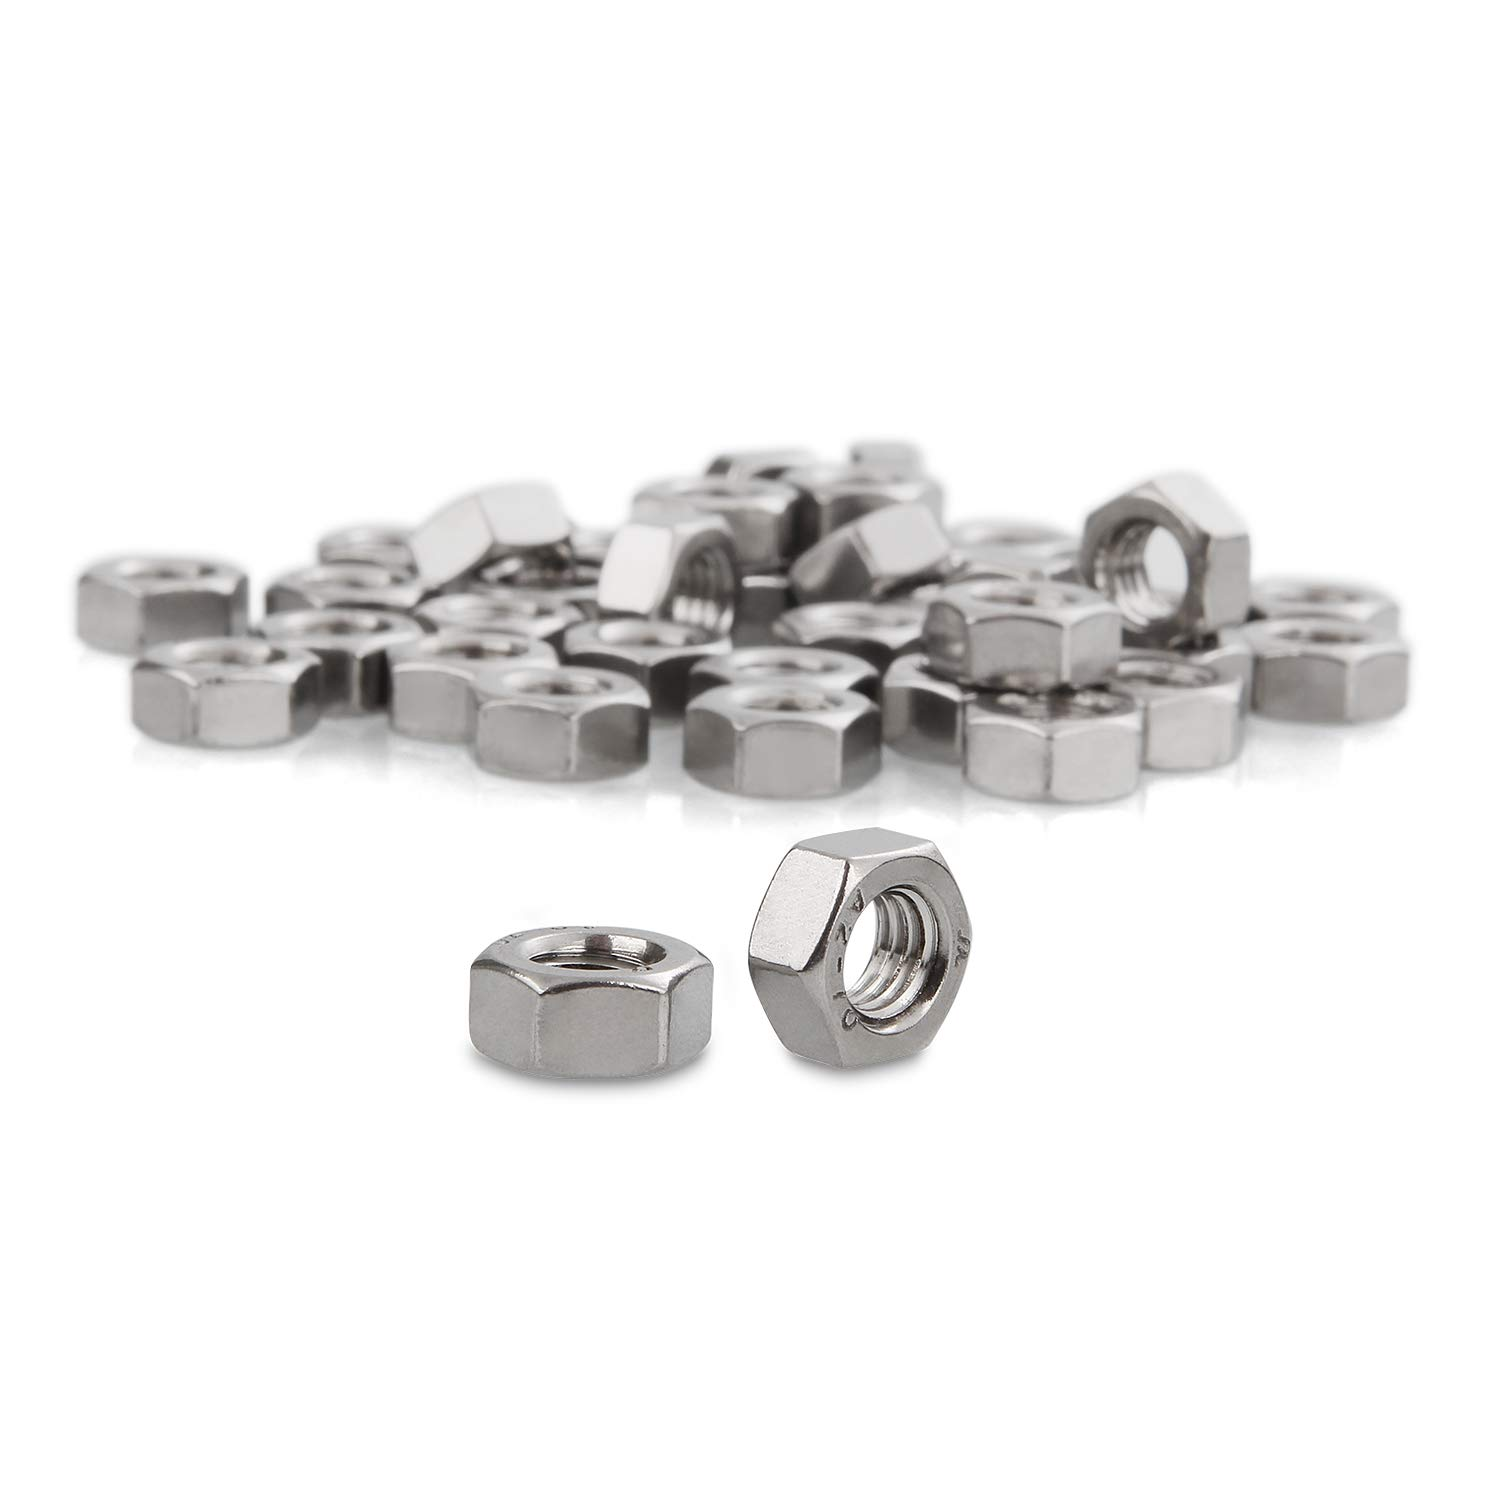 40 Pcs of Metric M8 Hex Nut Abuff M8 1.25 Stainless Steel Finished Hex Nut DIN931 Standard Hexagonal Nut Silver